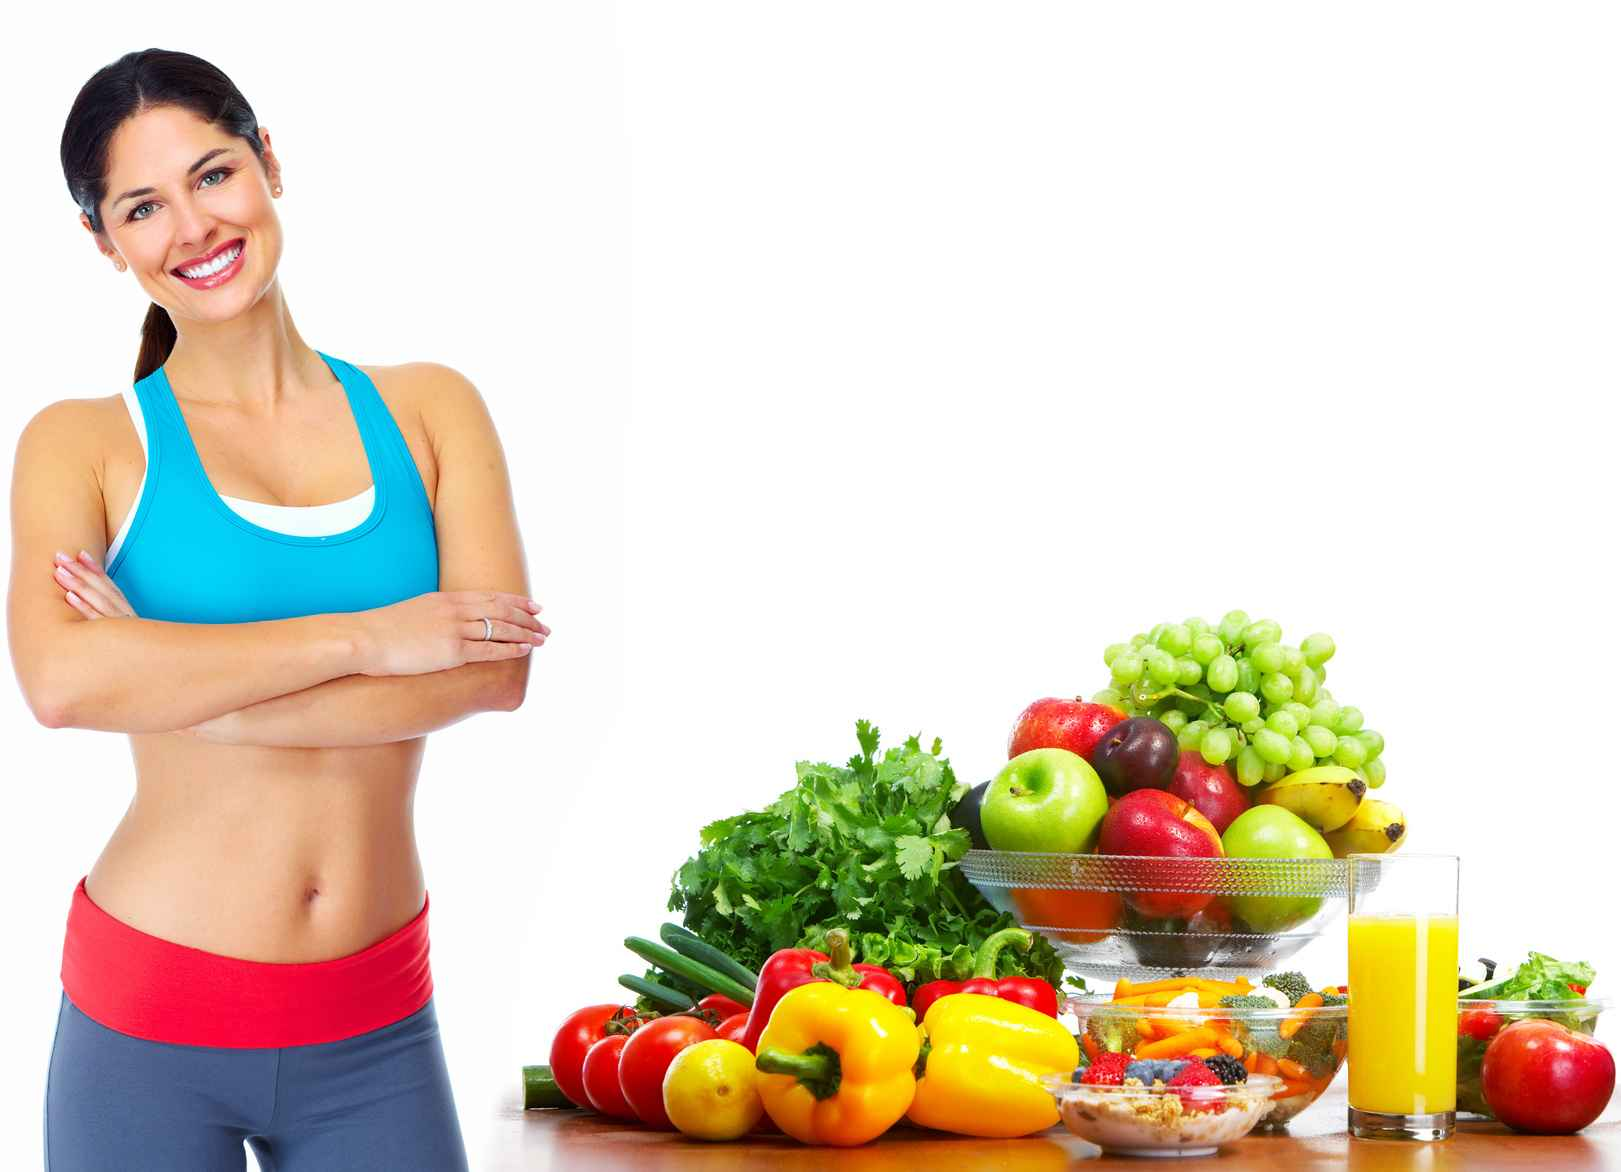 10 Recommendations For The Women's Health